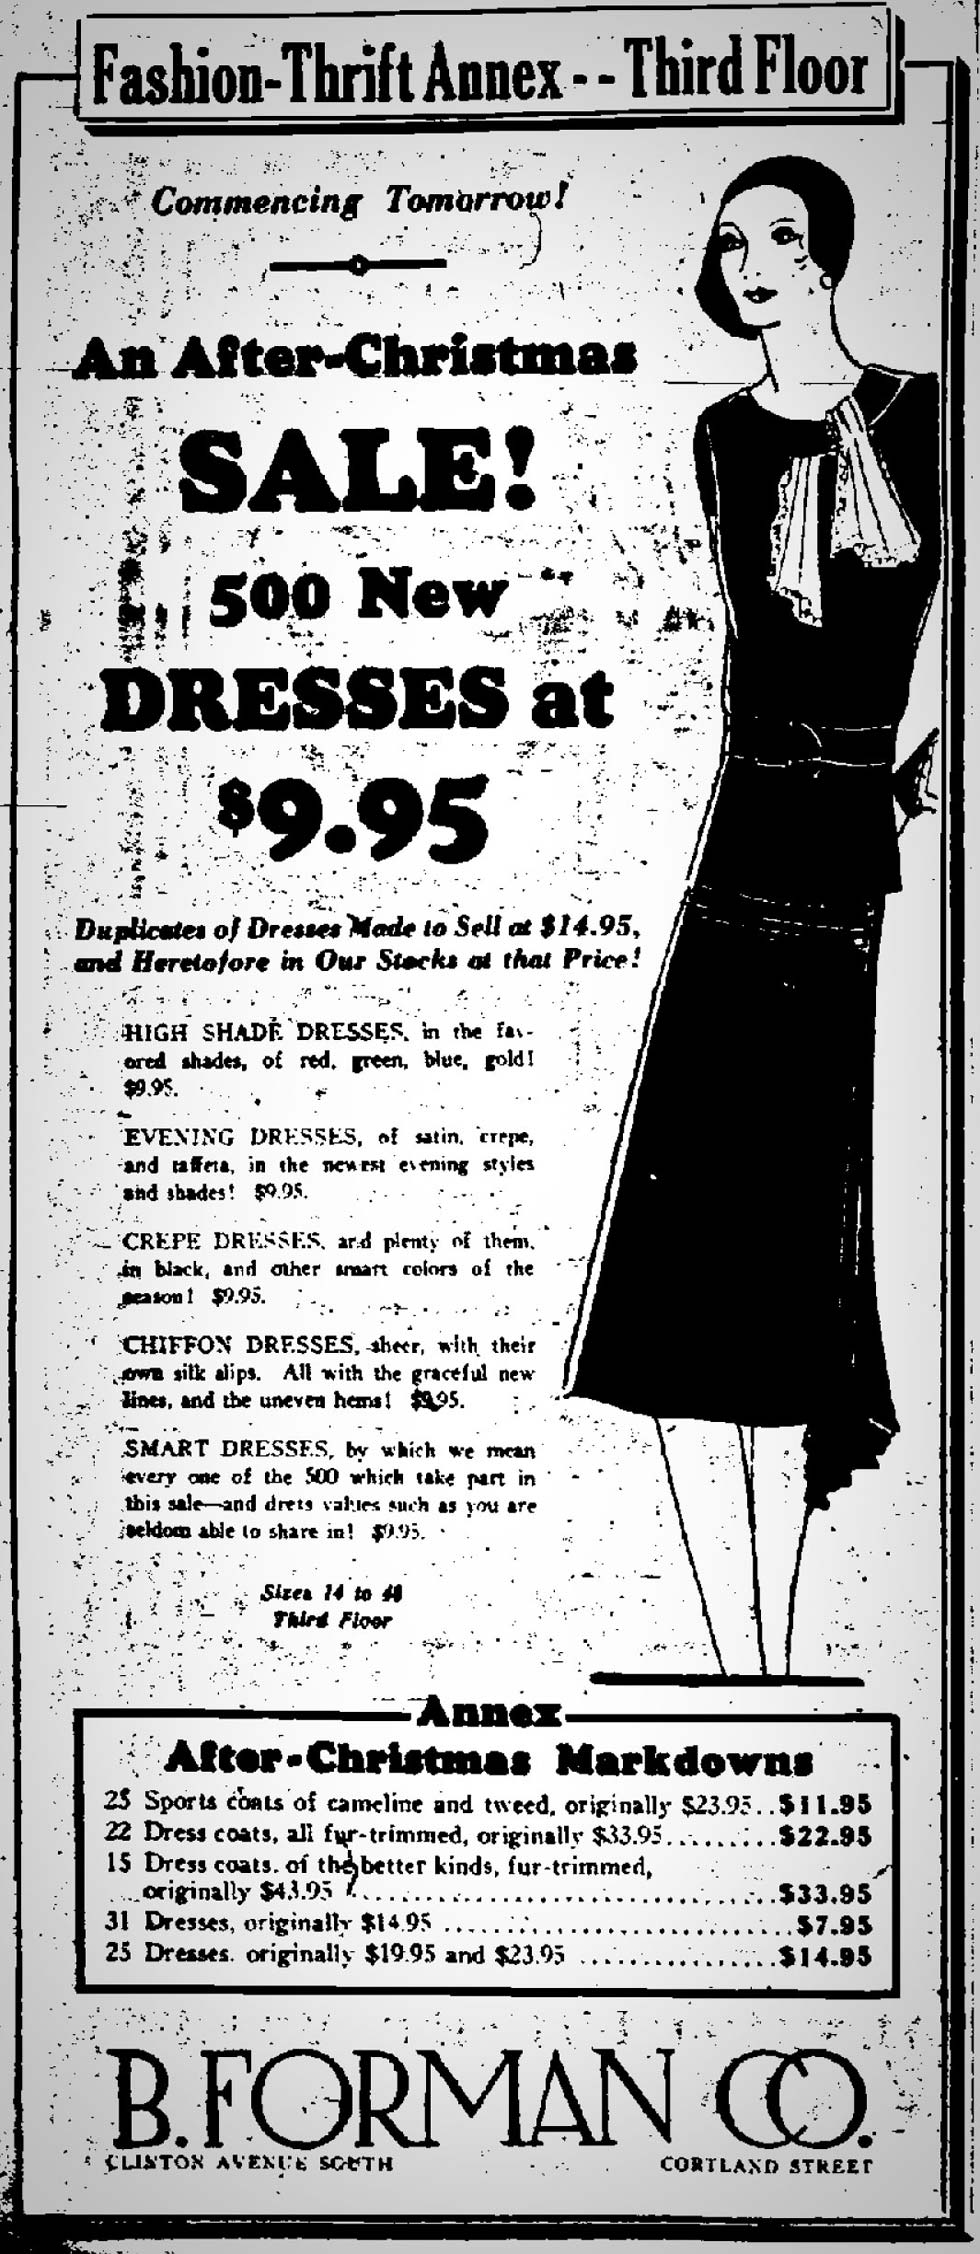 B. Forman Co. advertisment in the Democrat and Chronicle, December 25, 1929. [SOURCE: FultonHistory.com]